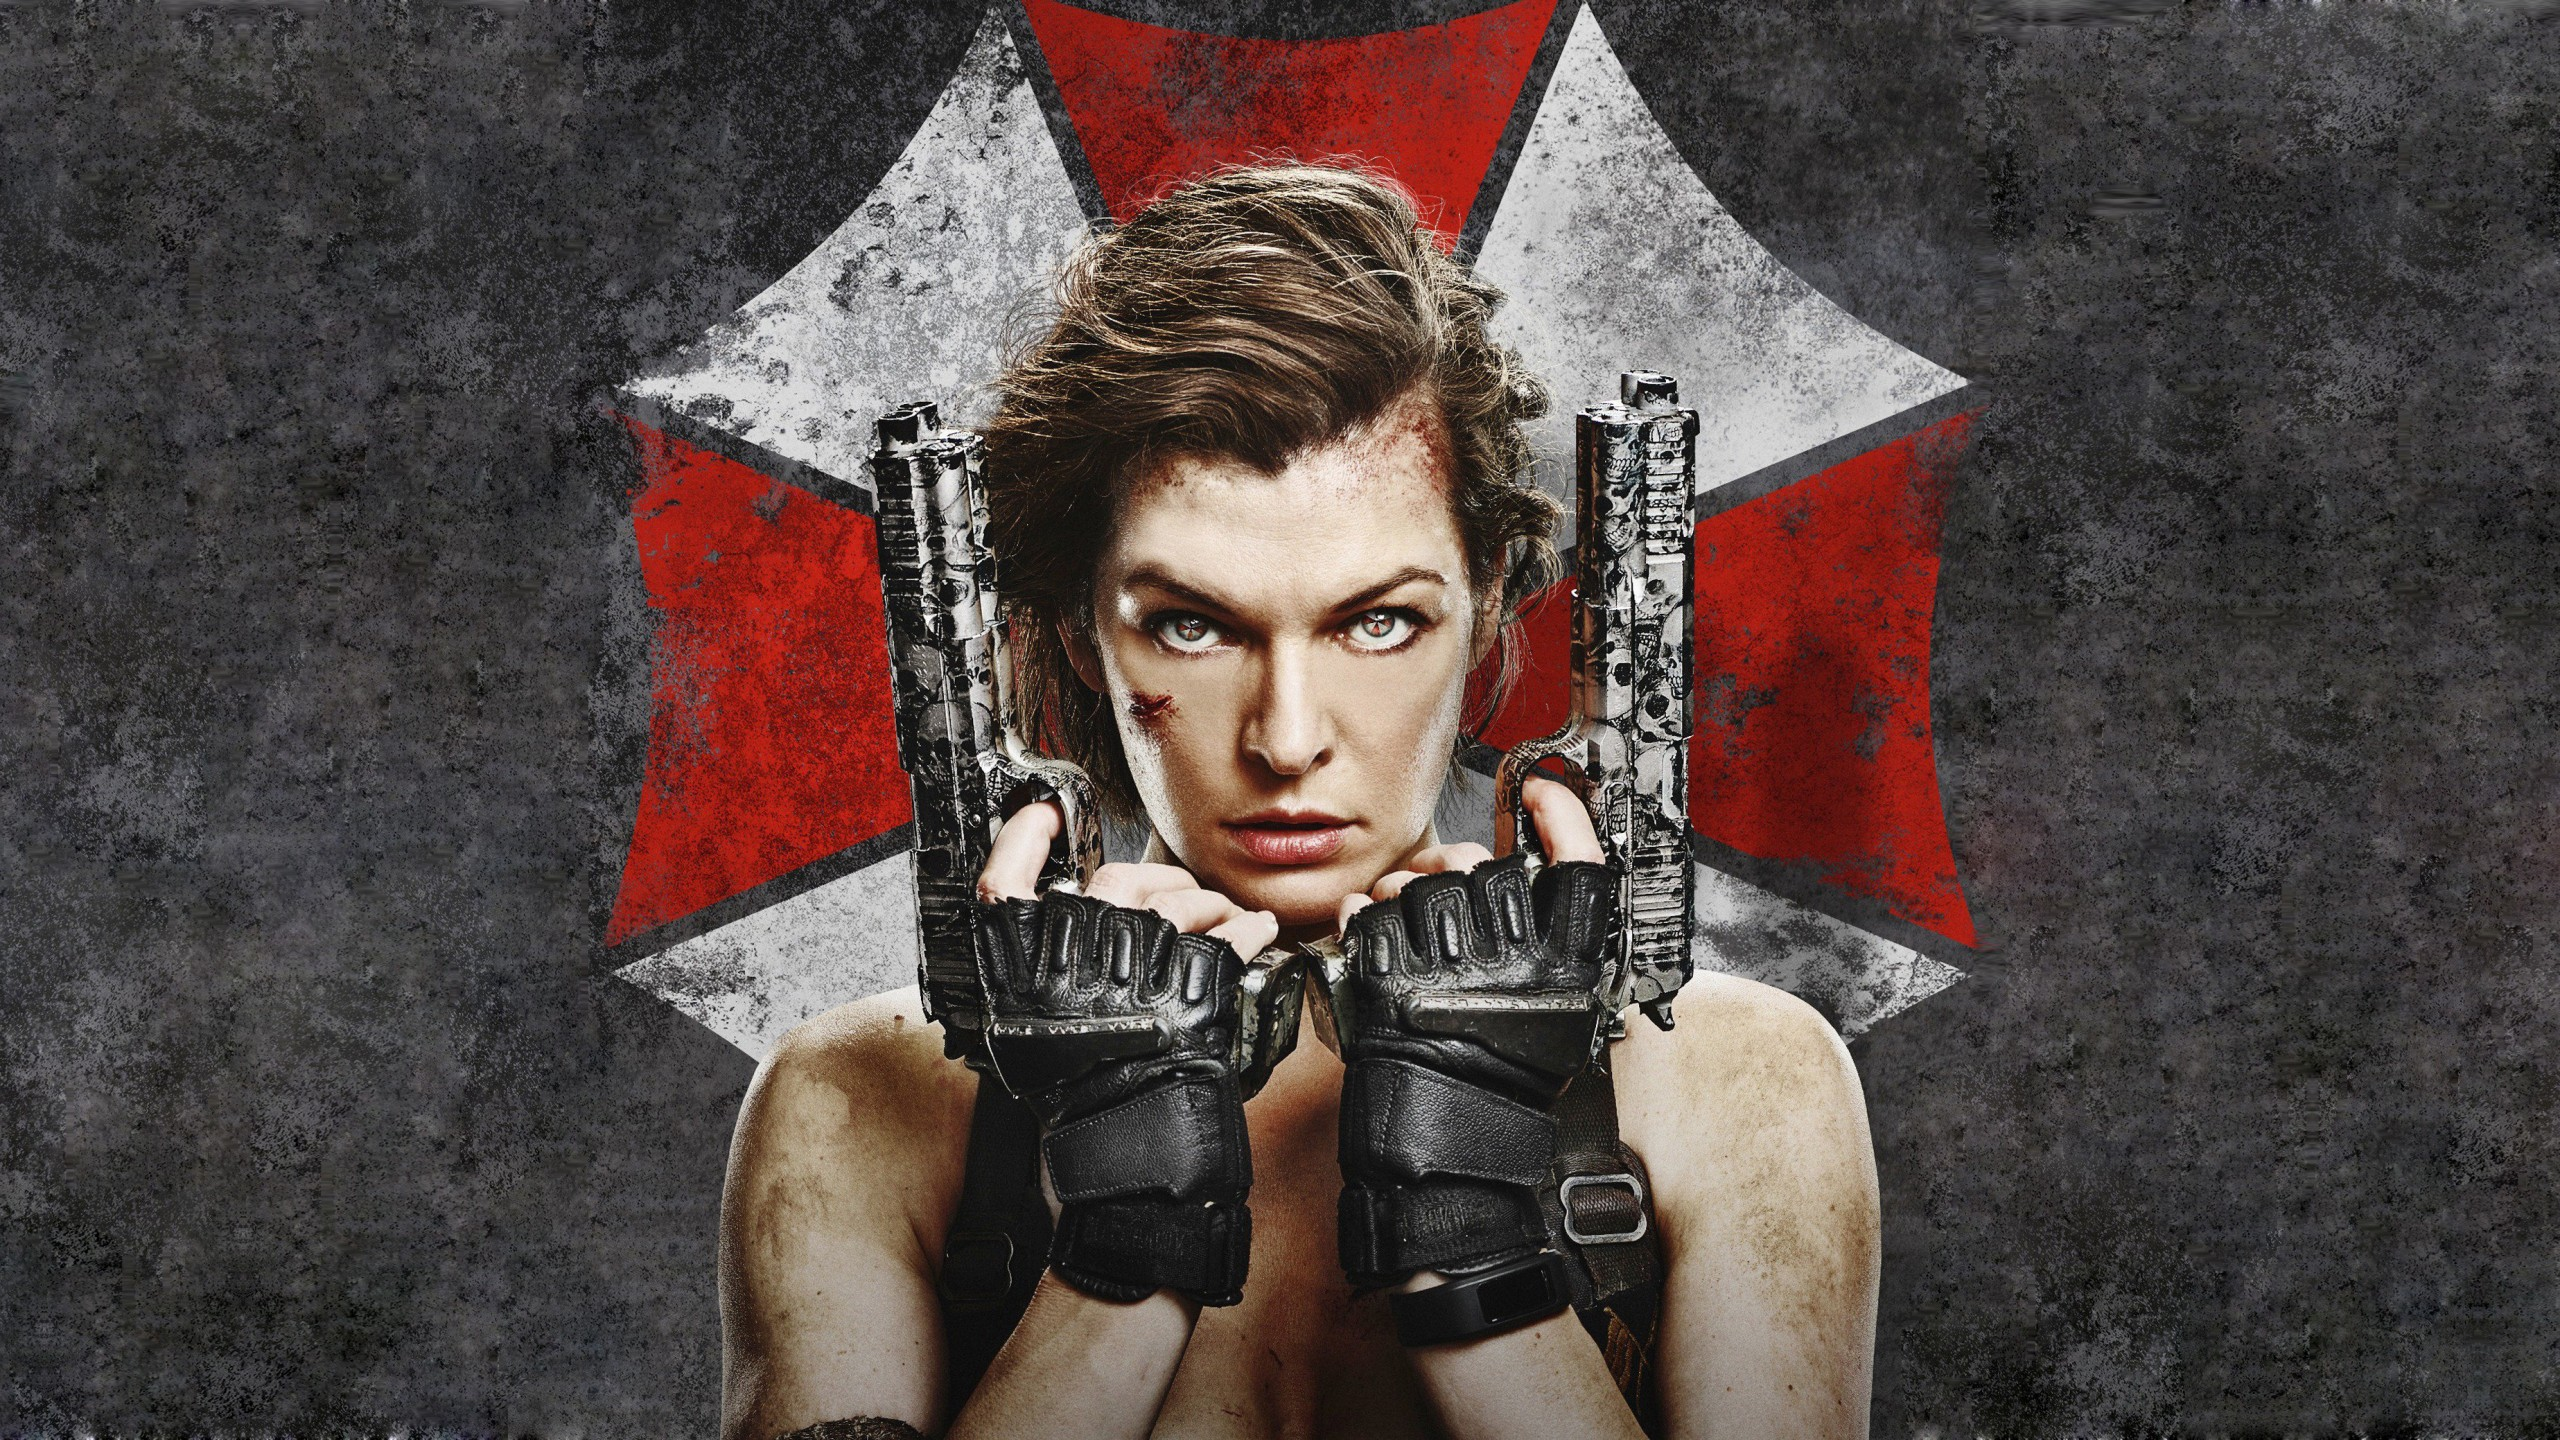 Ruby Rose Resident Evil The Final Chapter Wallpaper 11863: Wallpaper Resident Evil: The Final Chapter, Milla Jovovich